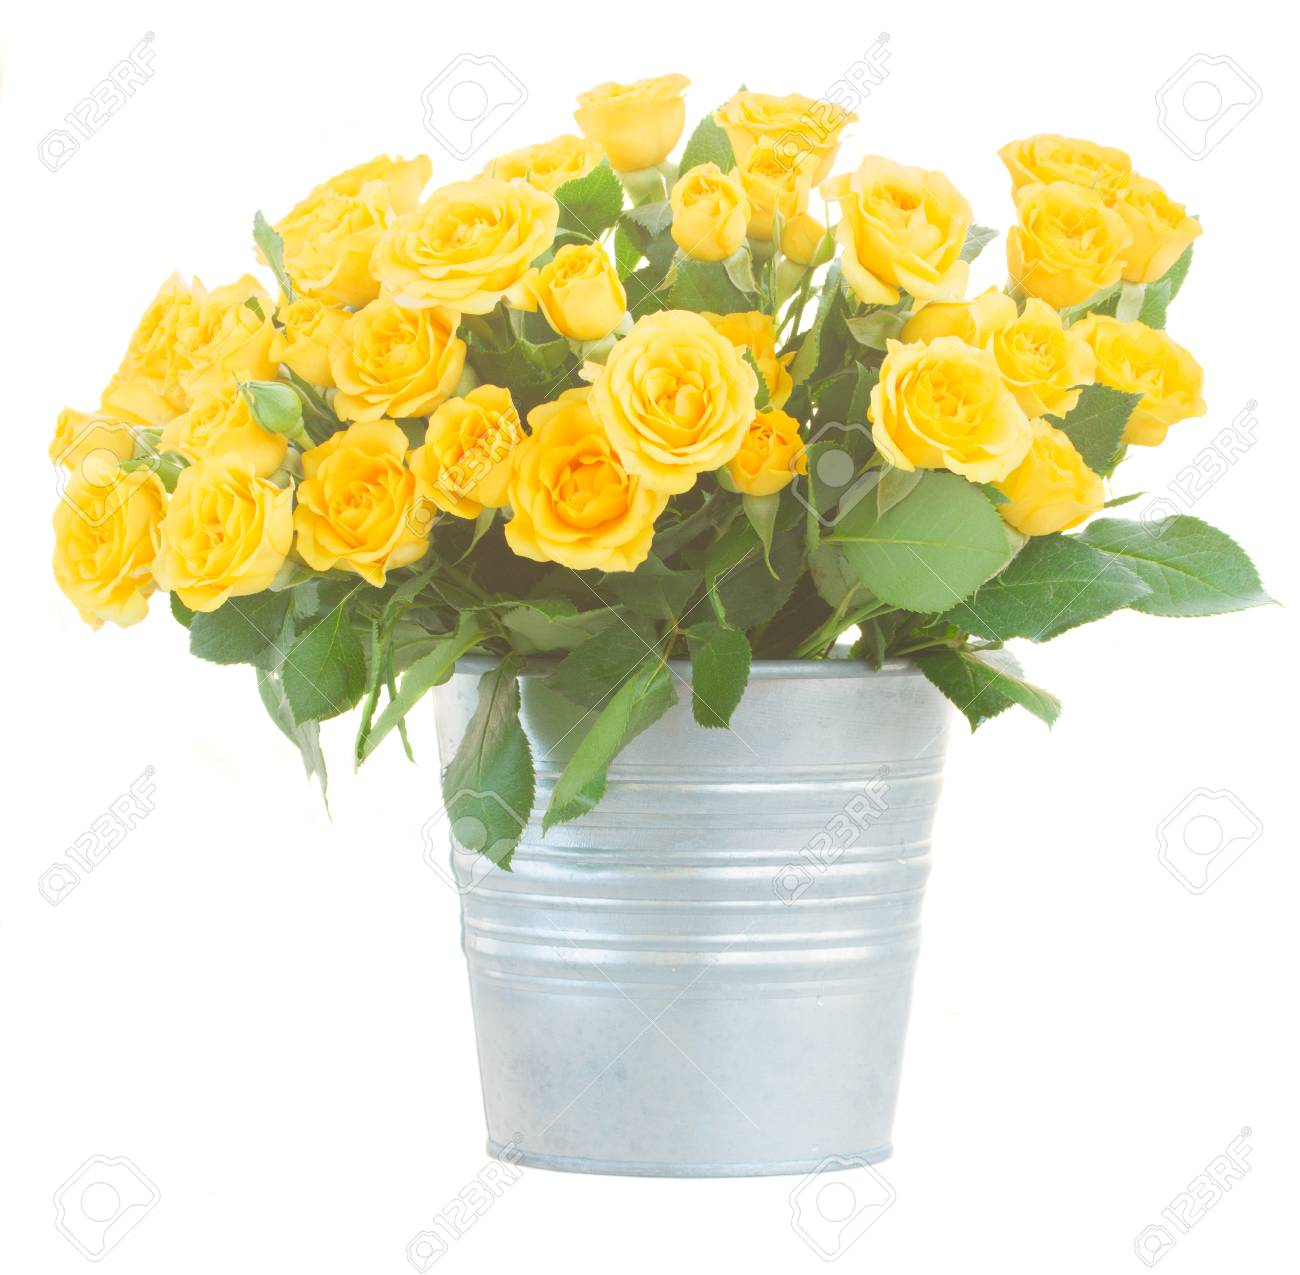 Bunch Of Yellow Roses With Green Leaves In Metal Pot Isolated